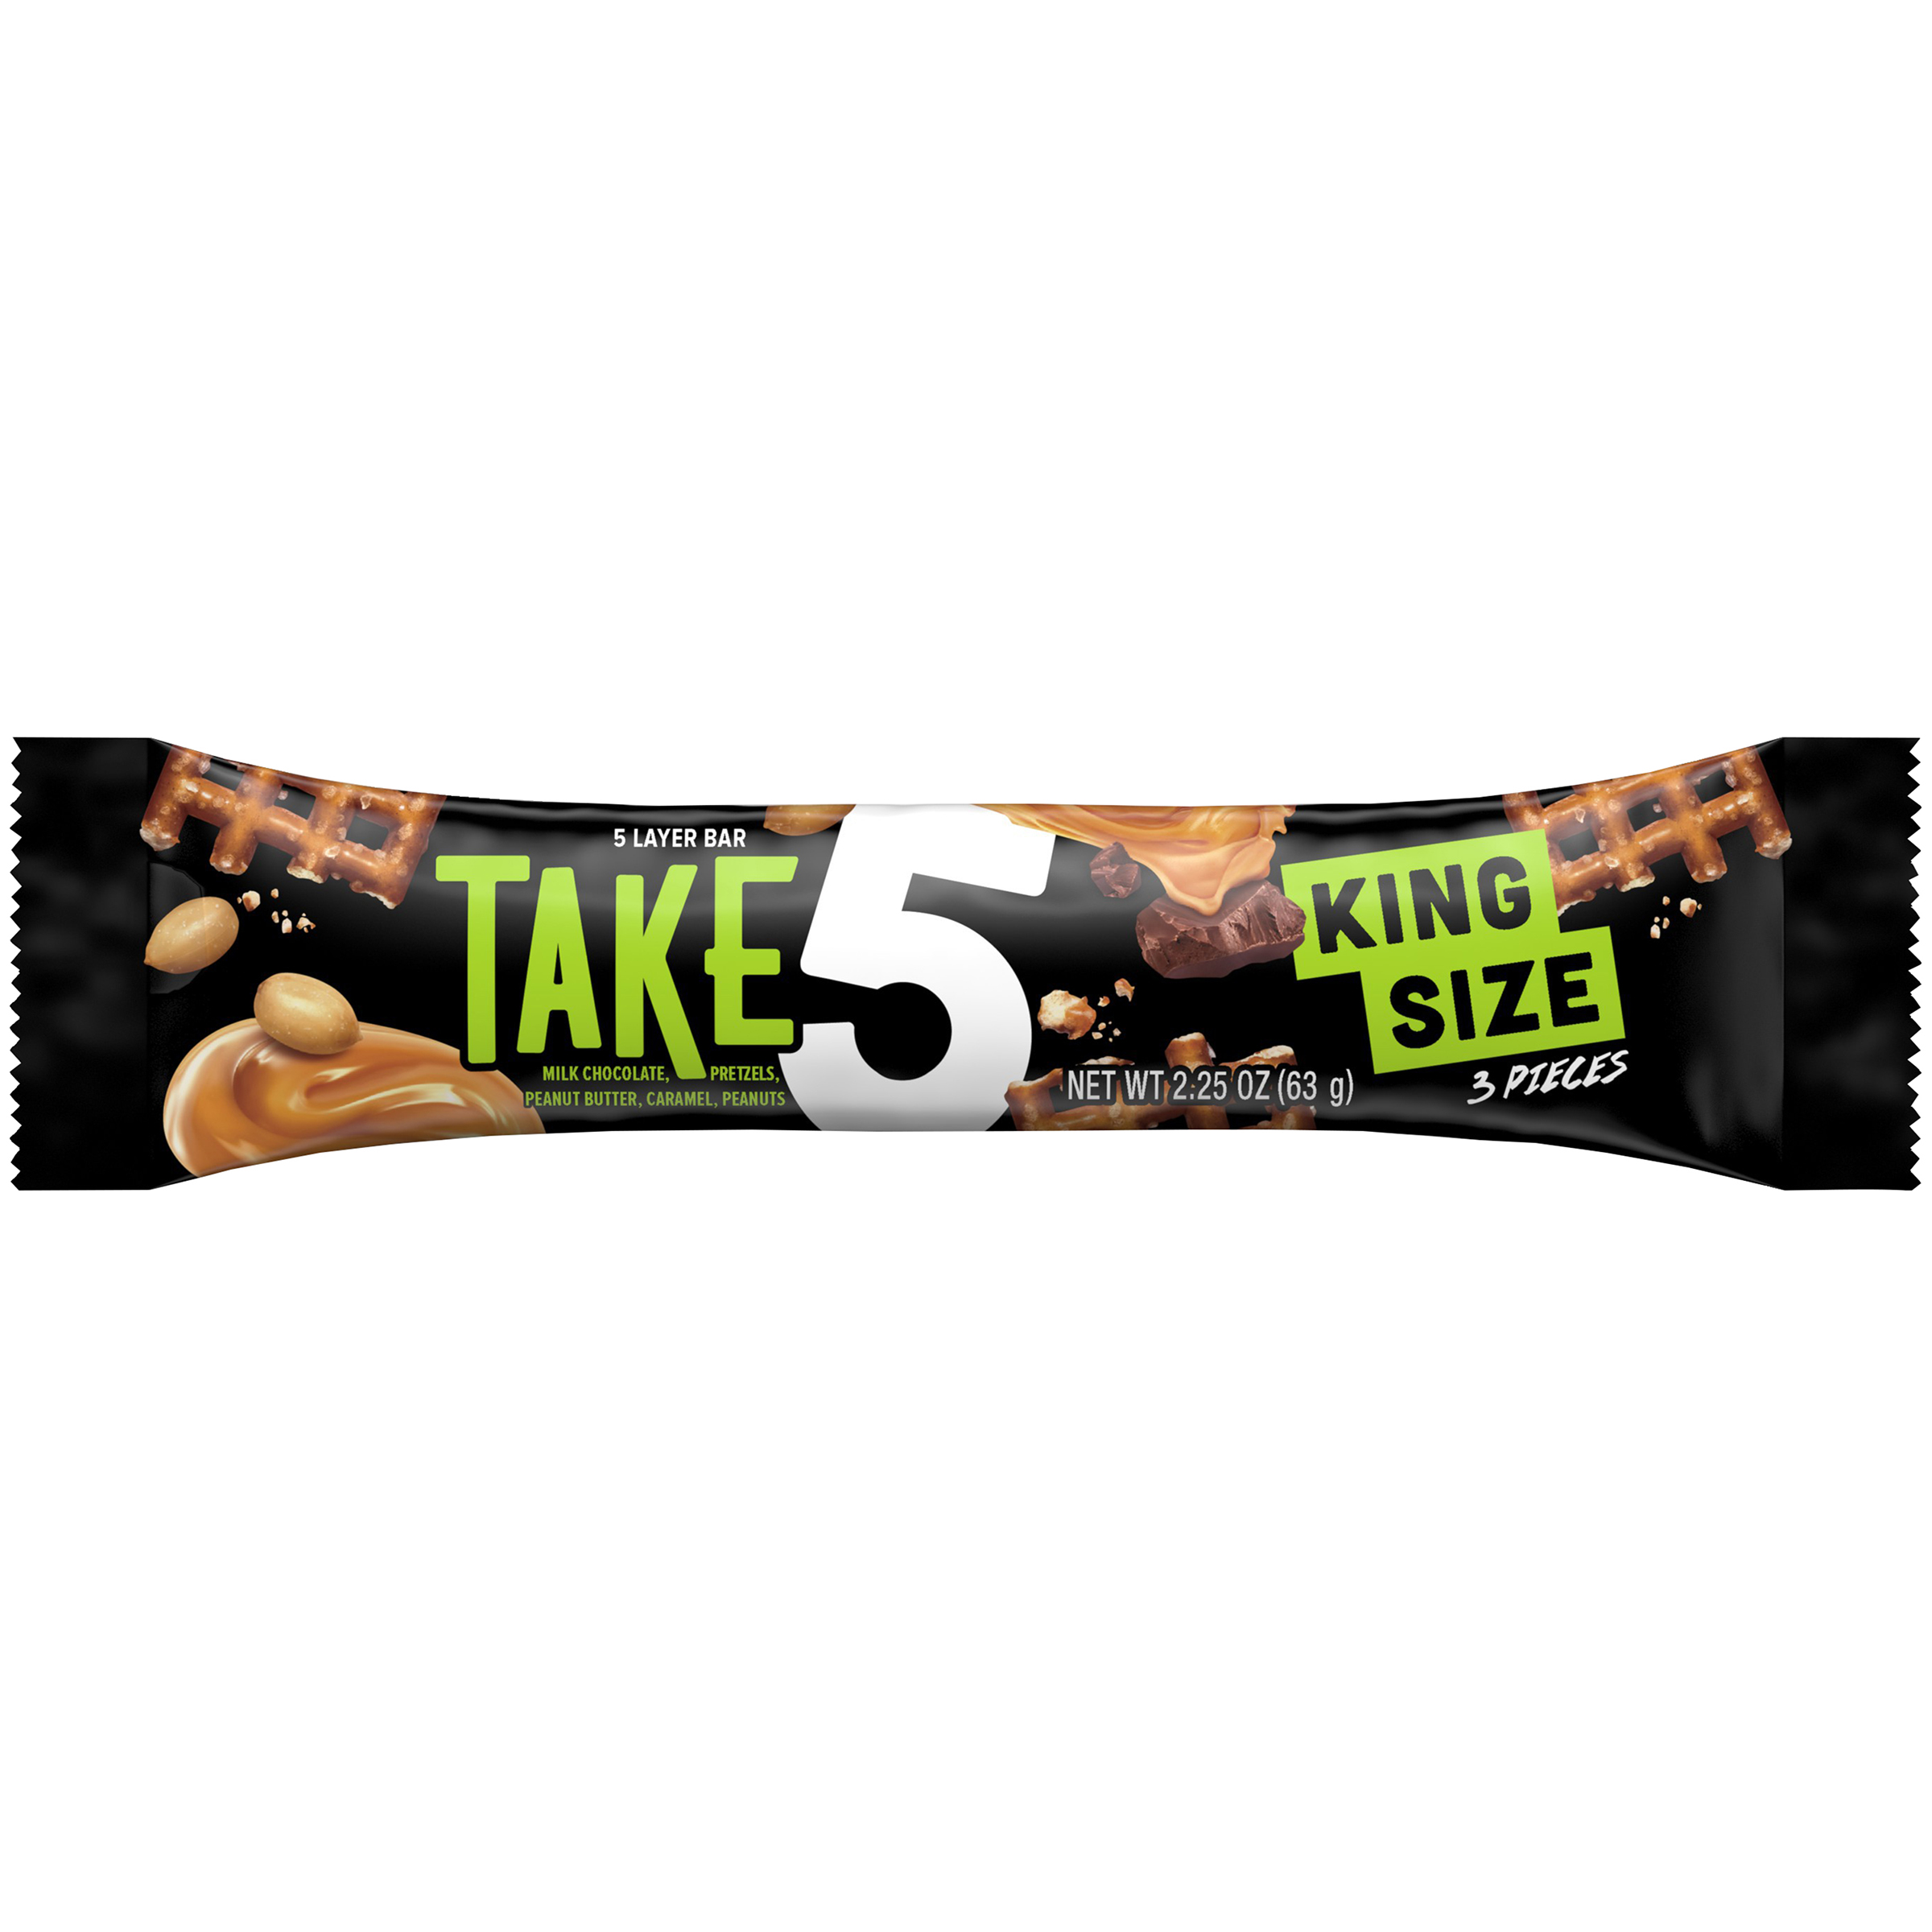 TAKE 5 King Size Candy Bar, 2.25 oz